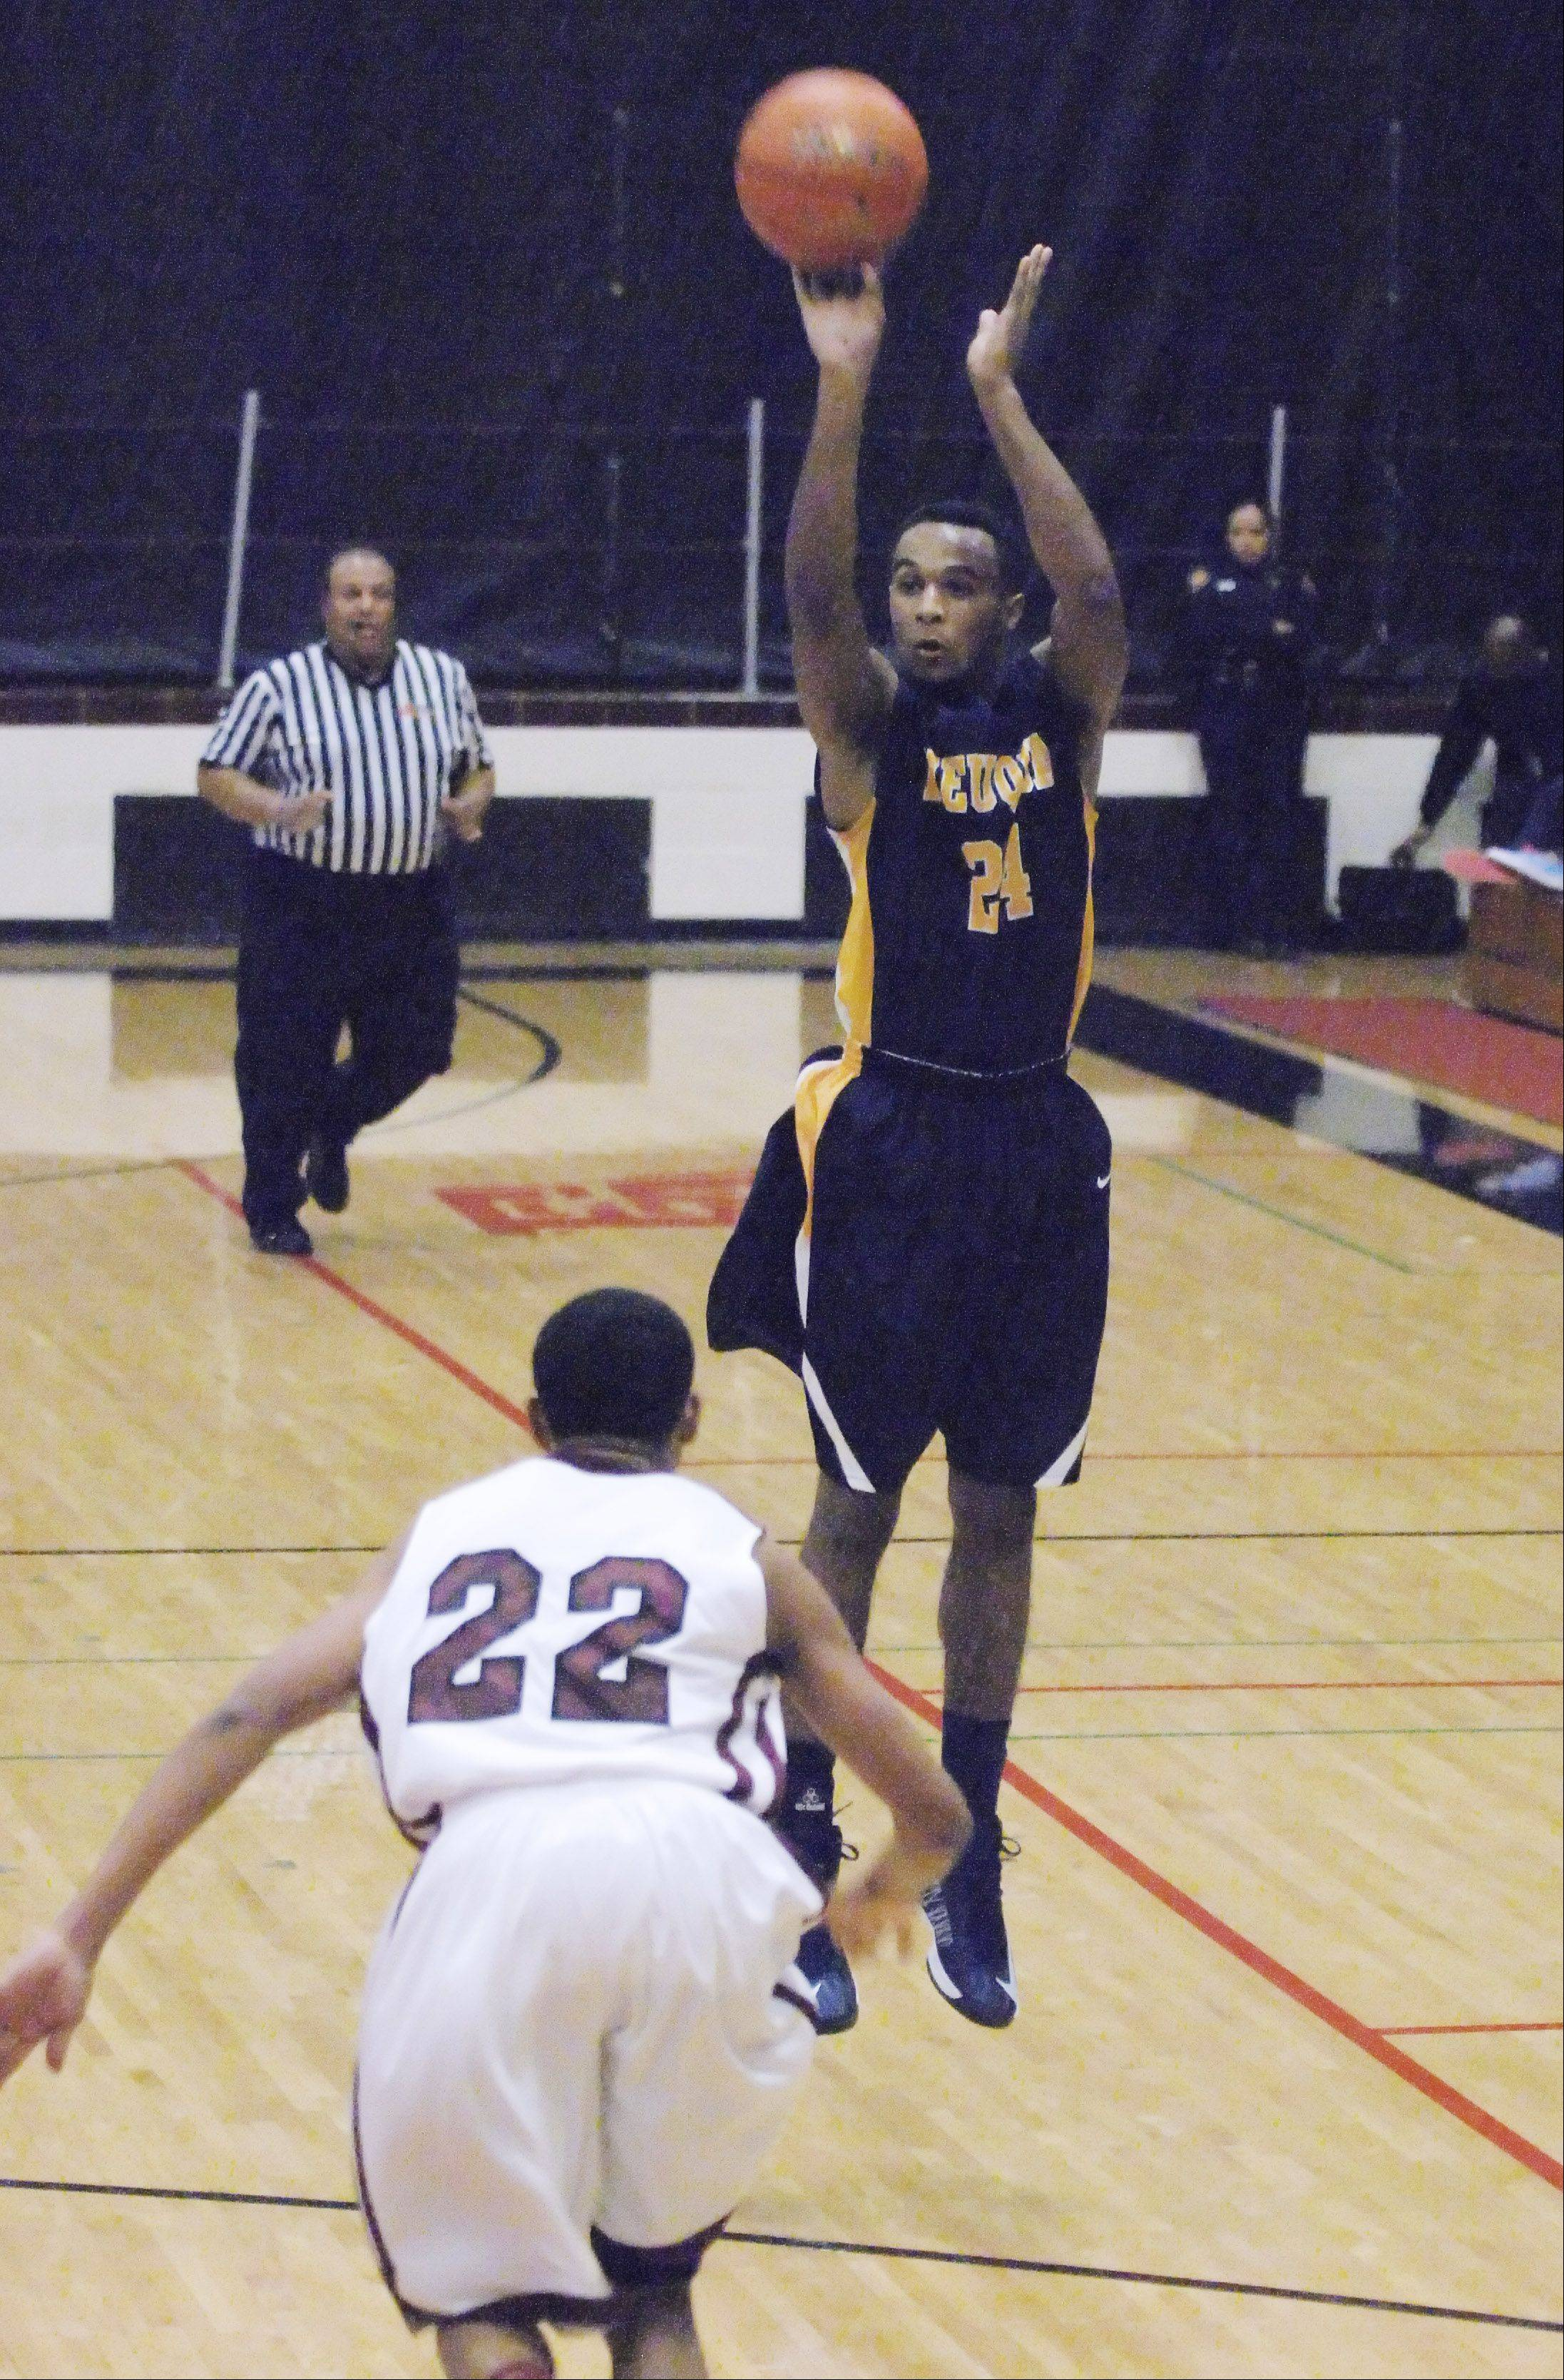 Jabari Sandifer of Neuqua Valley releases a 3-pointer against Peoria Central on Friday at East Aurora.